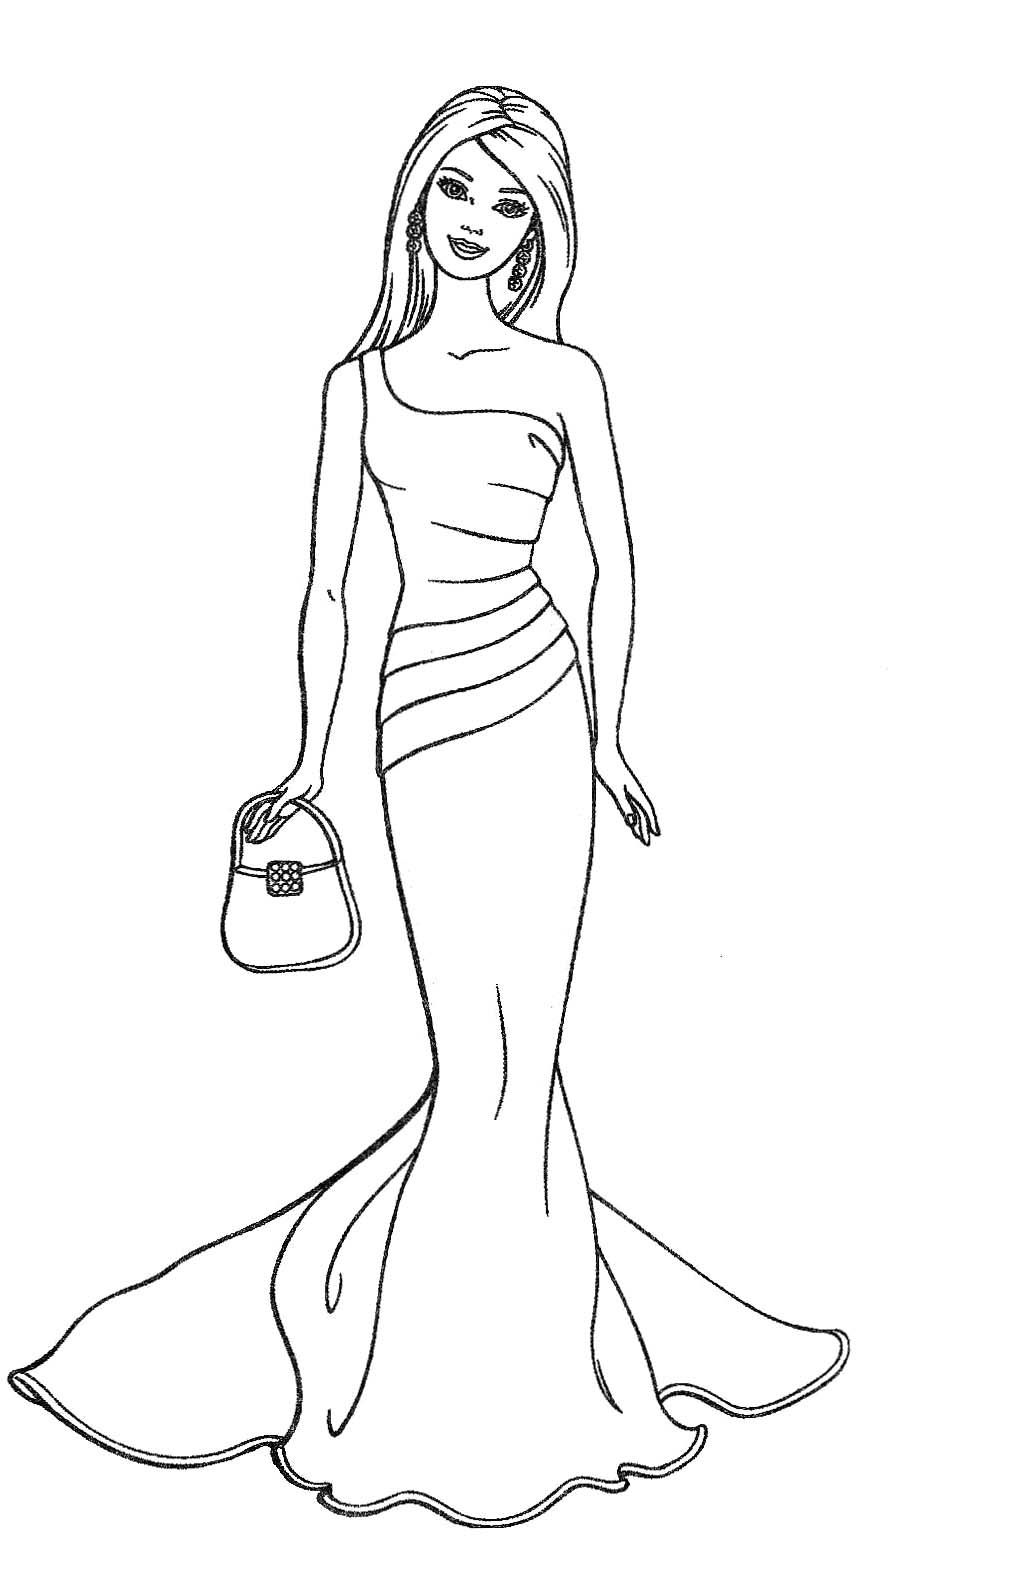 Barbie fashion coloring page 01 spa day party for Fashion barbie coloring pages